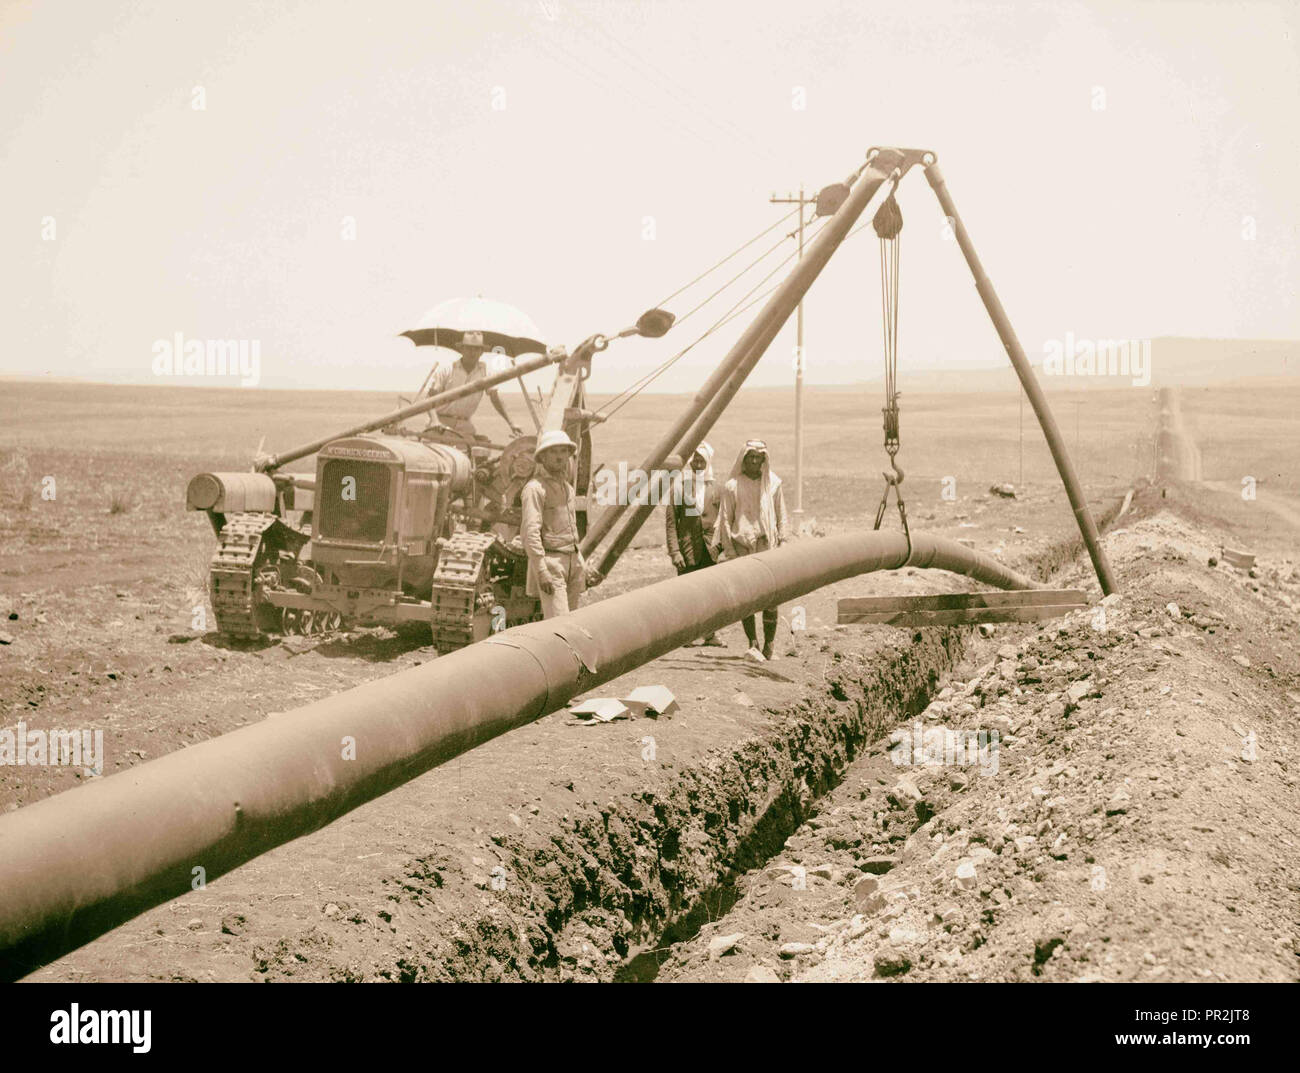 Laying of the Iraq Petroleum Company's pipe line across the Plain of Esdraelon, July 1933. Dropping welded pipe into trench. - Stock Image